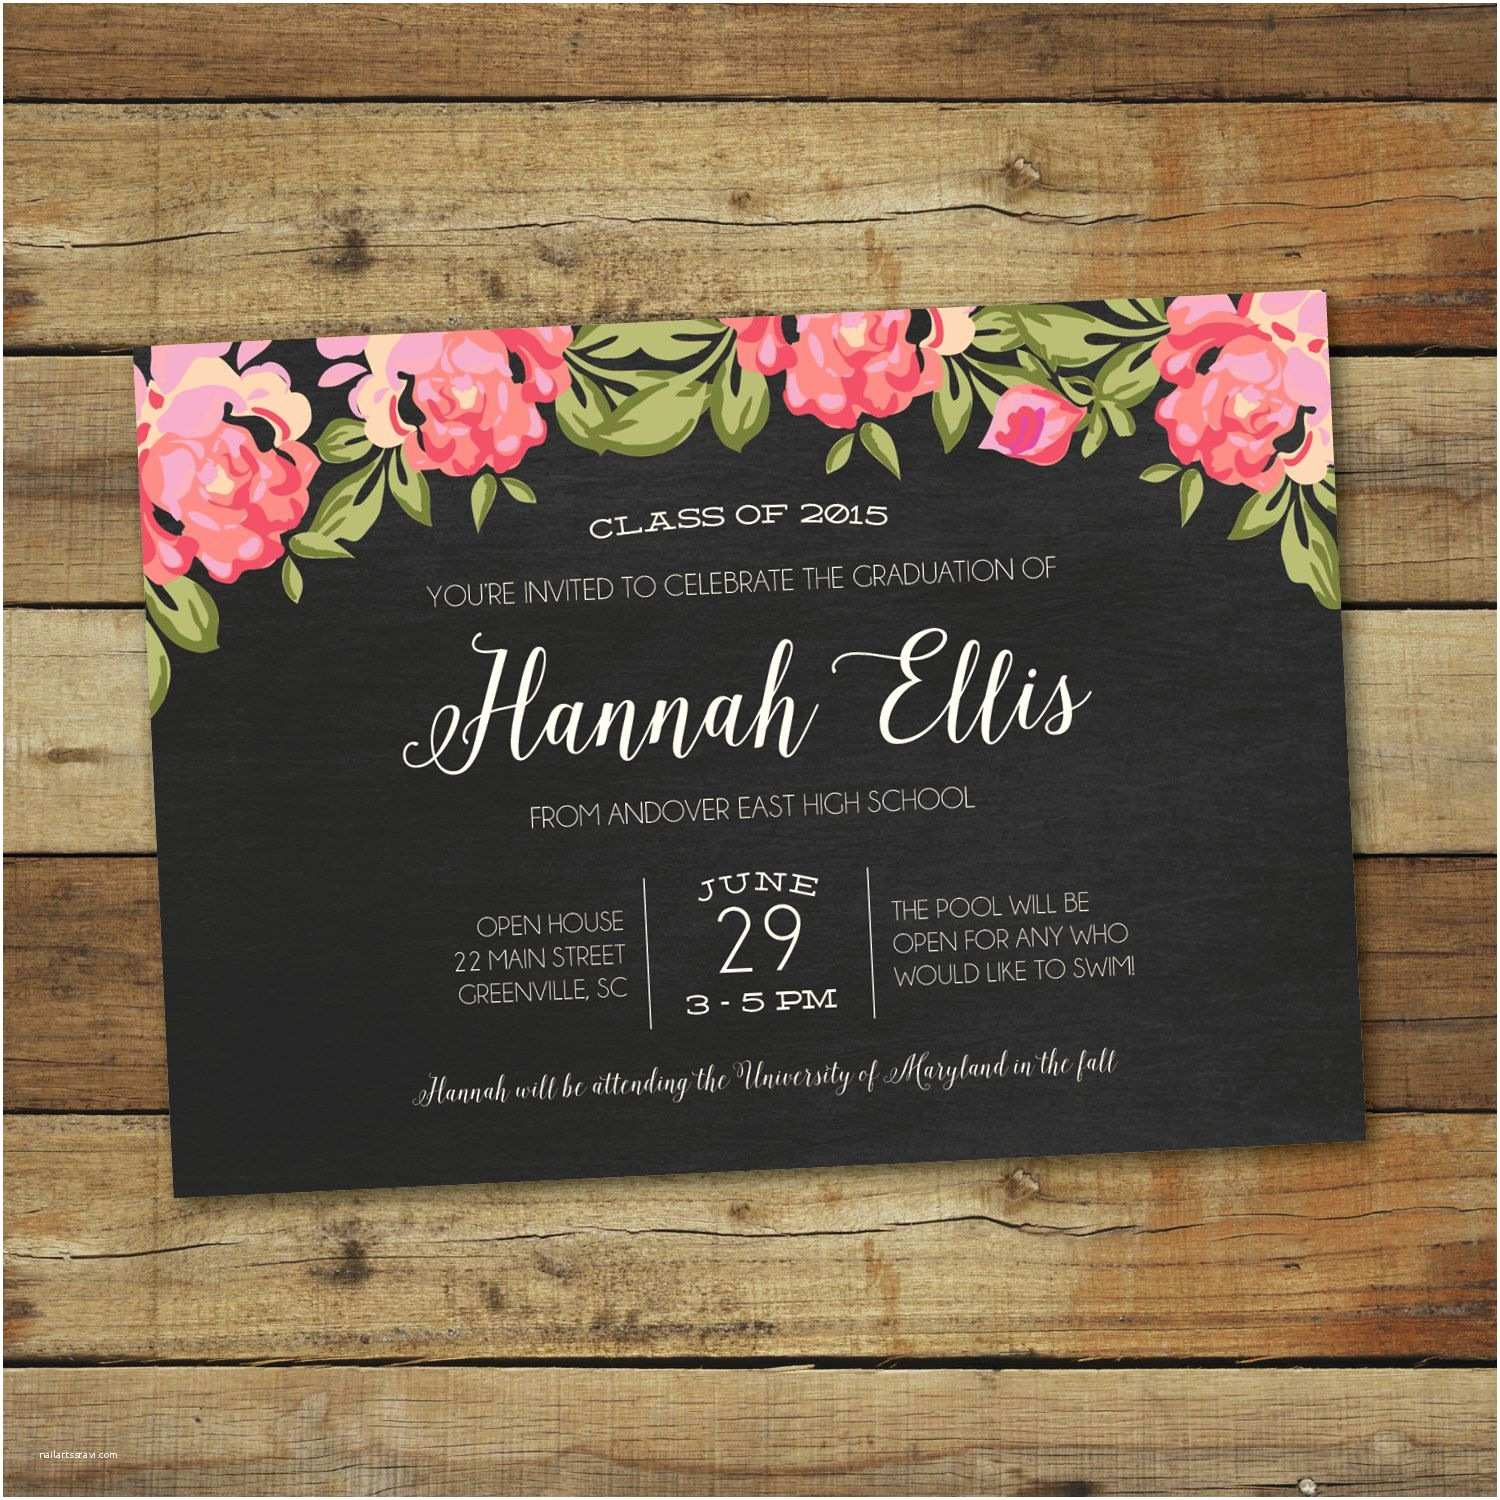 Graduation Open House Invitations Roses Graduation Party Invitation Floral Graduation Open